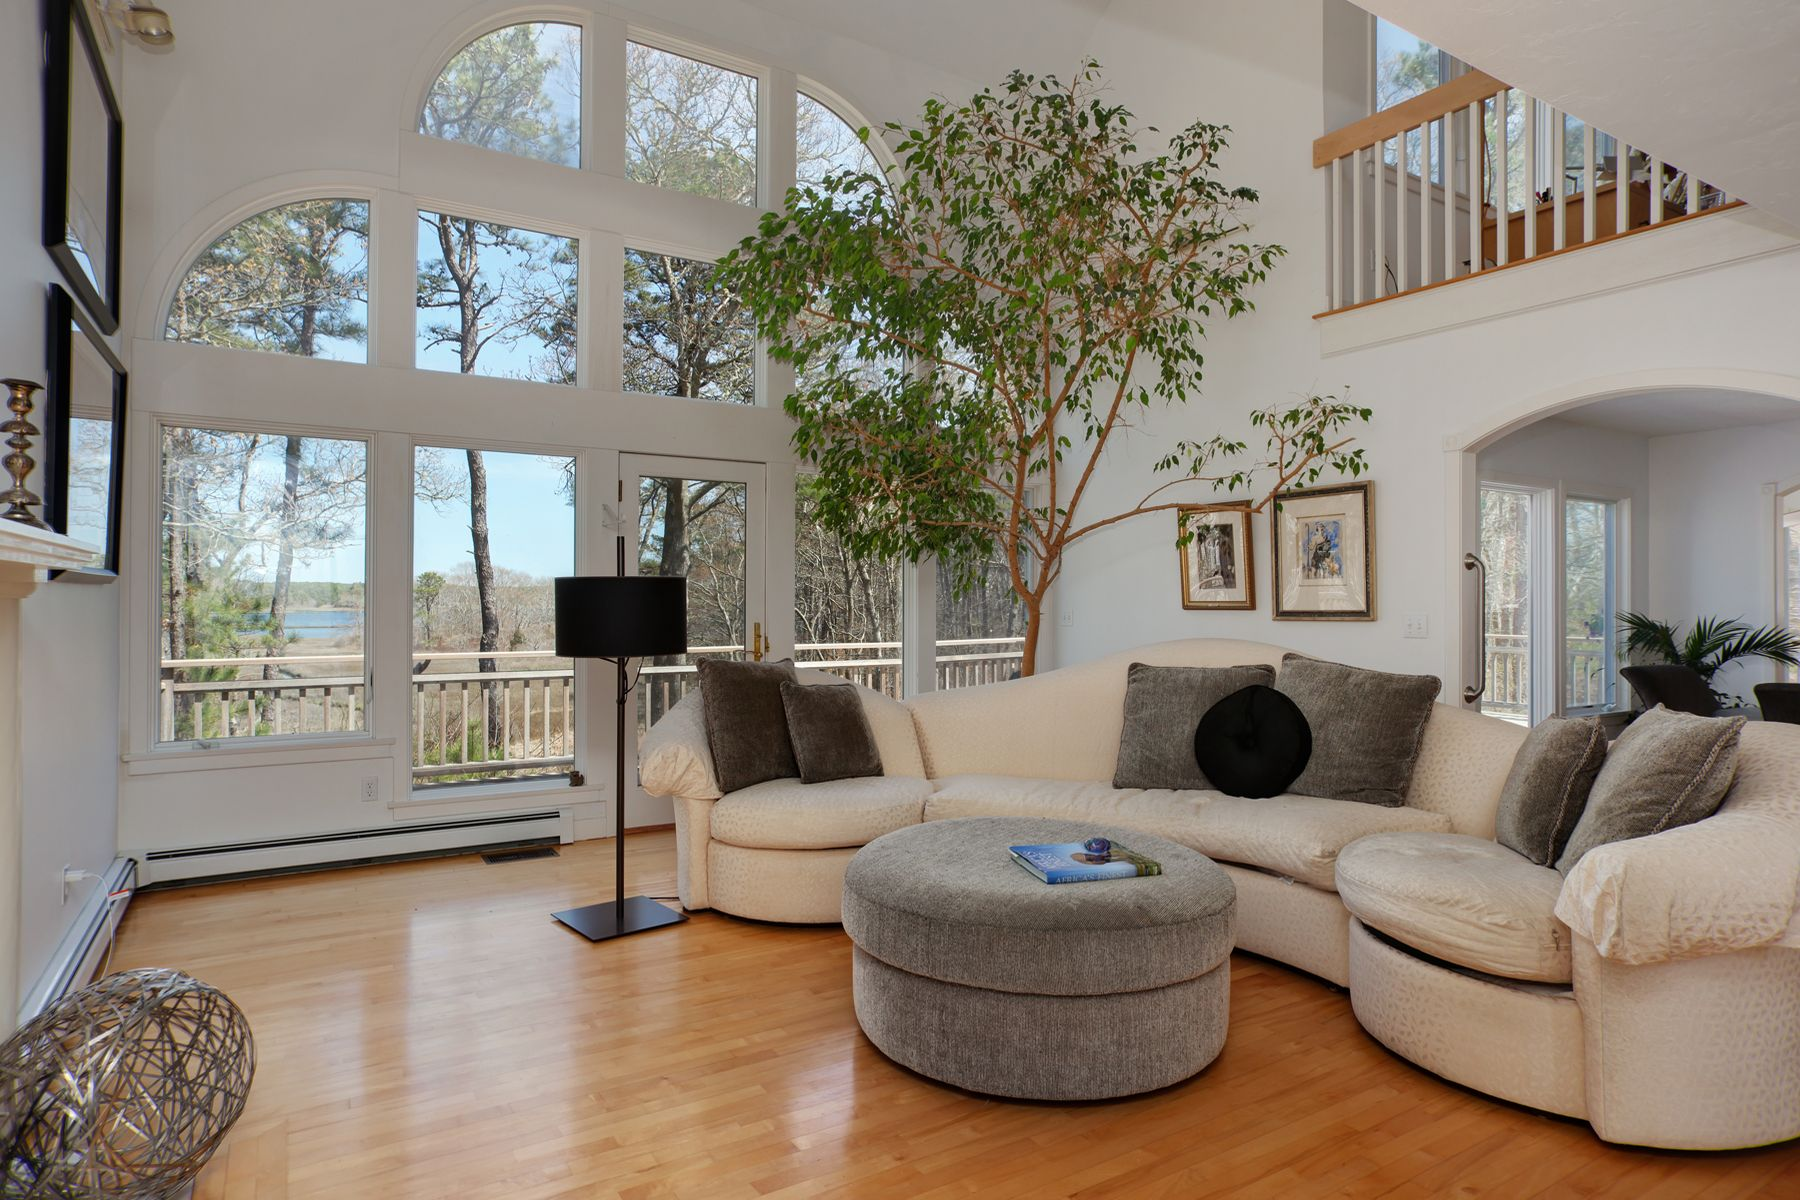 Single Family Homes for Active at Waterfront With Association Dock 100 Meadow Neck Road East Falmouth, Massachusetts 02536 United States